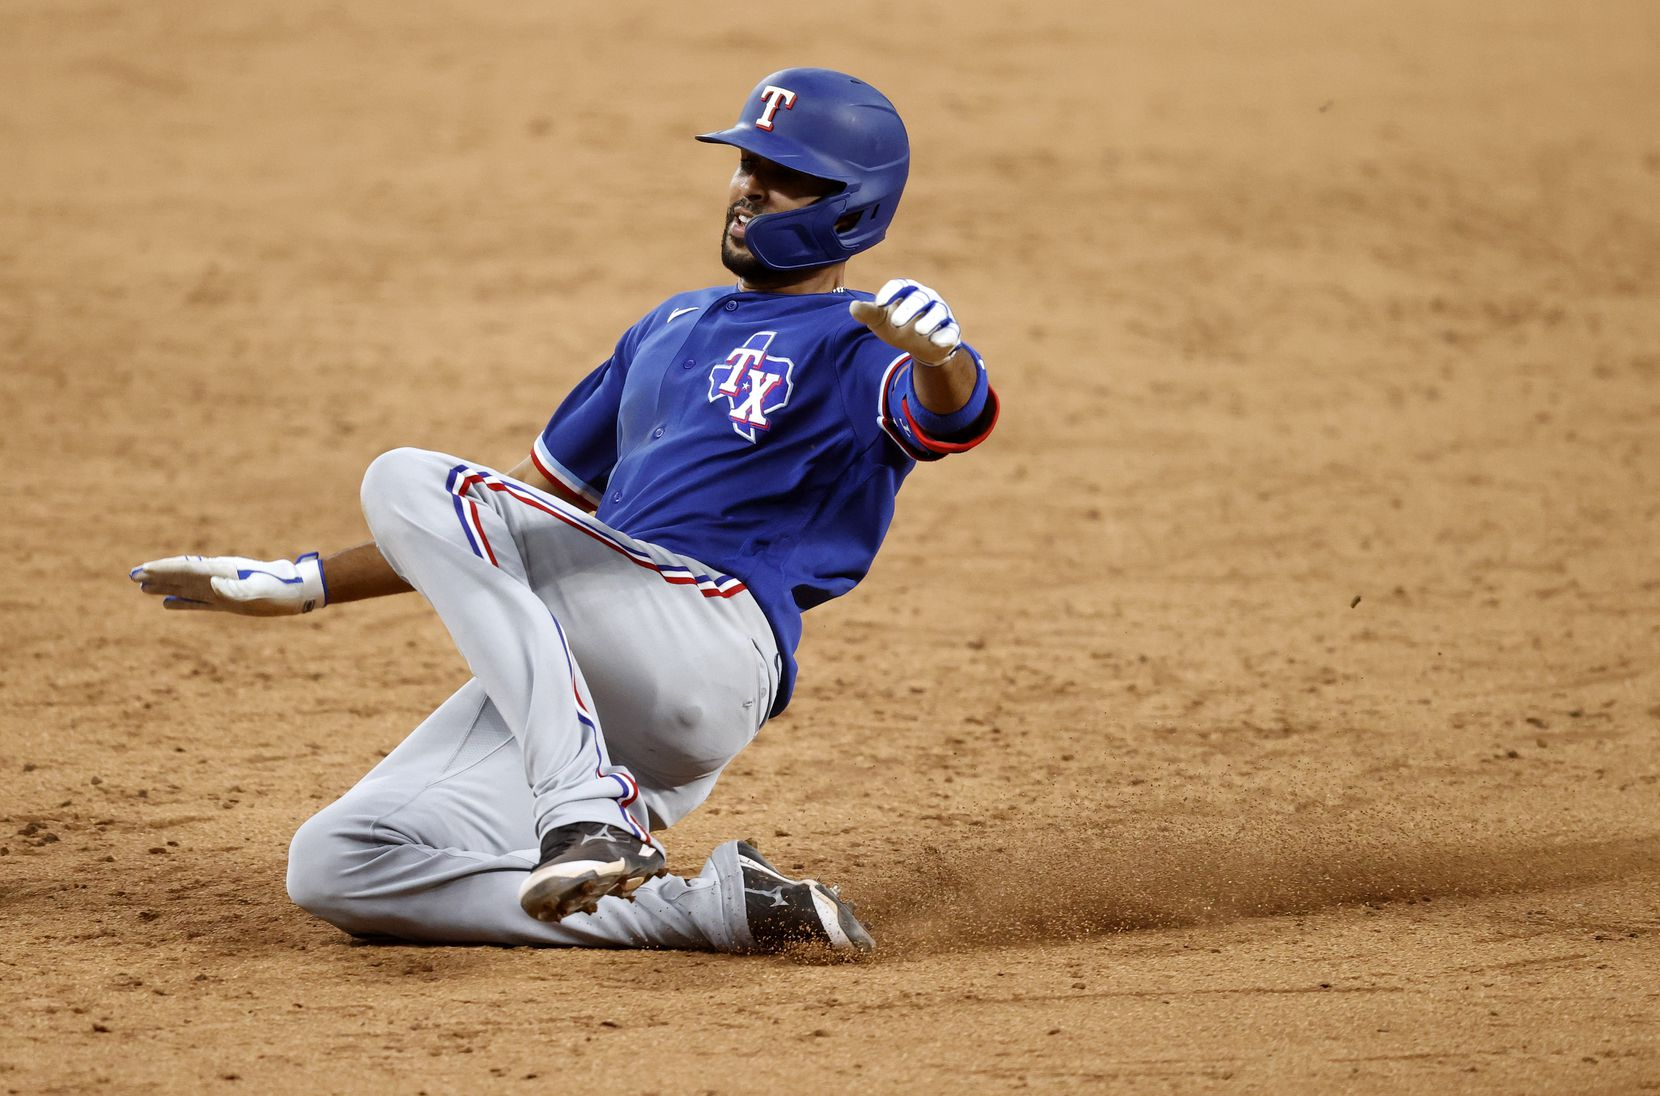 Texas Rangers Yadiel Rivera slides into third base for a triple during an intrasquad Summer Camp game inside Globe Life Field in Arlington, Texas, Friday, July 10, 2020. (Tom Fox/The Dallas Morning News)